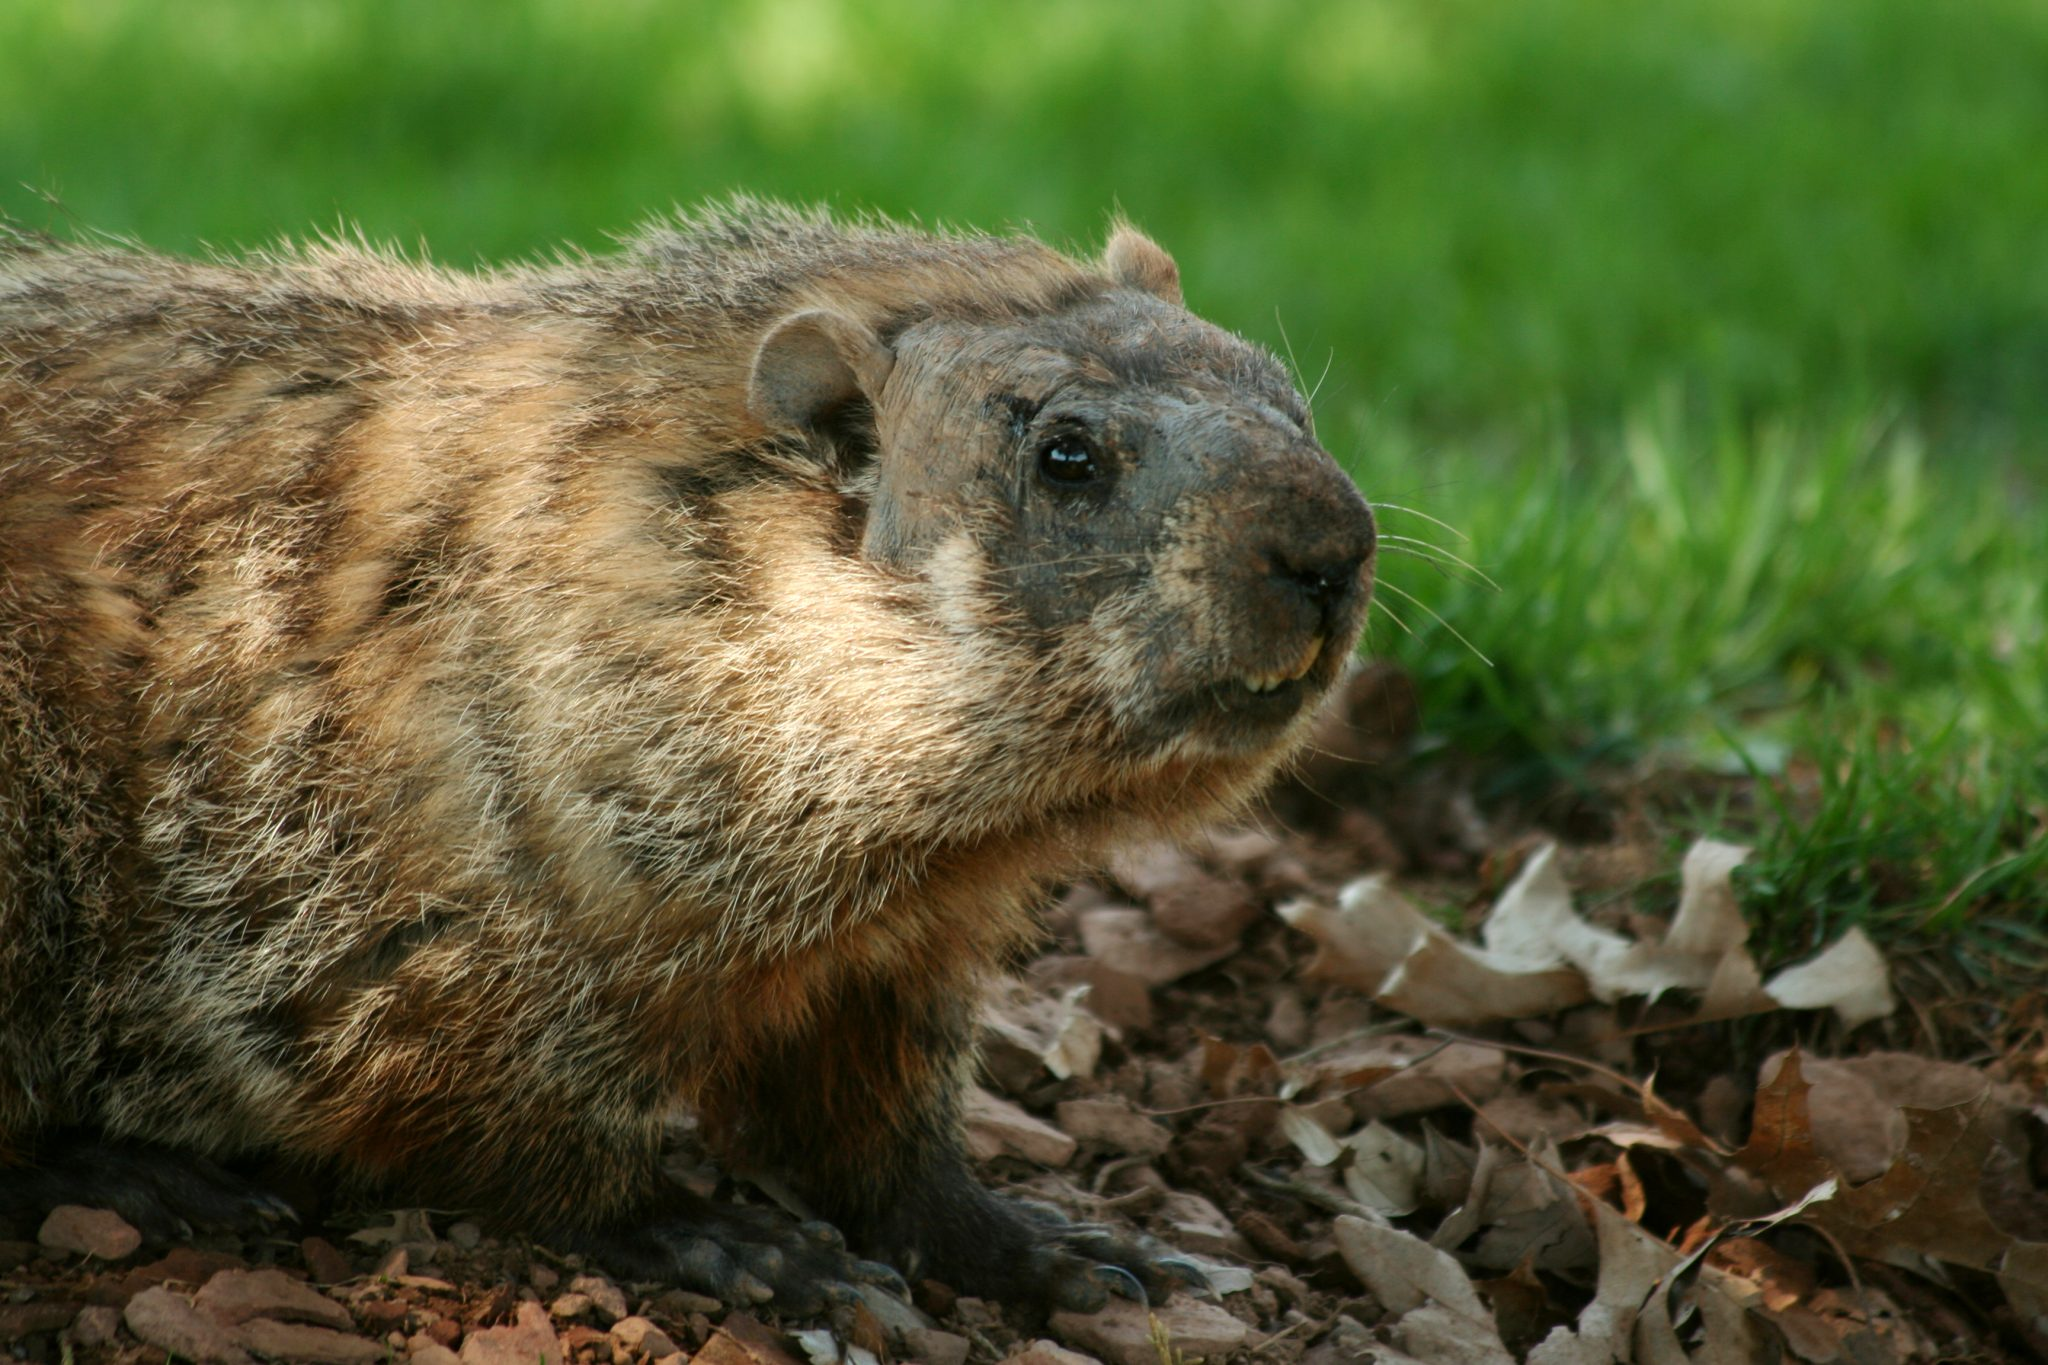 pest control services in annapolis -- Raven Termite and Pest Control